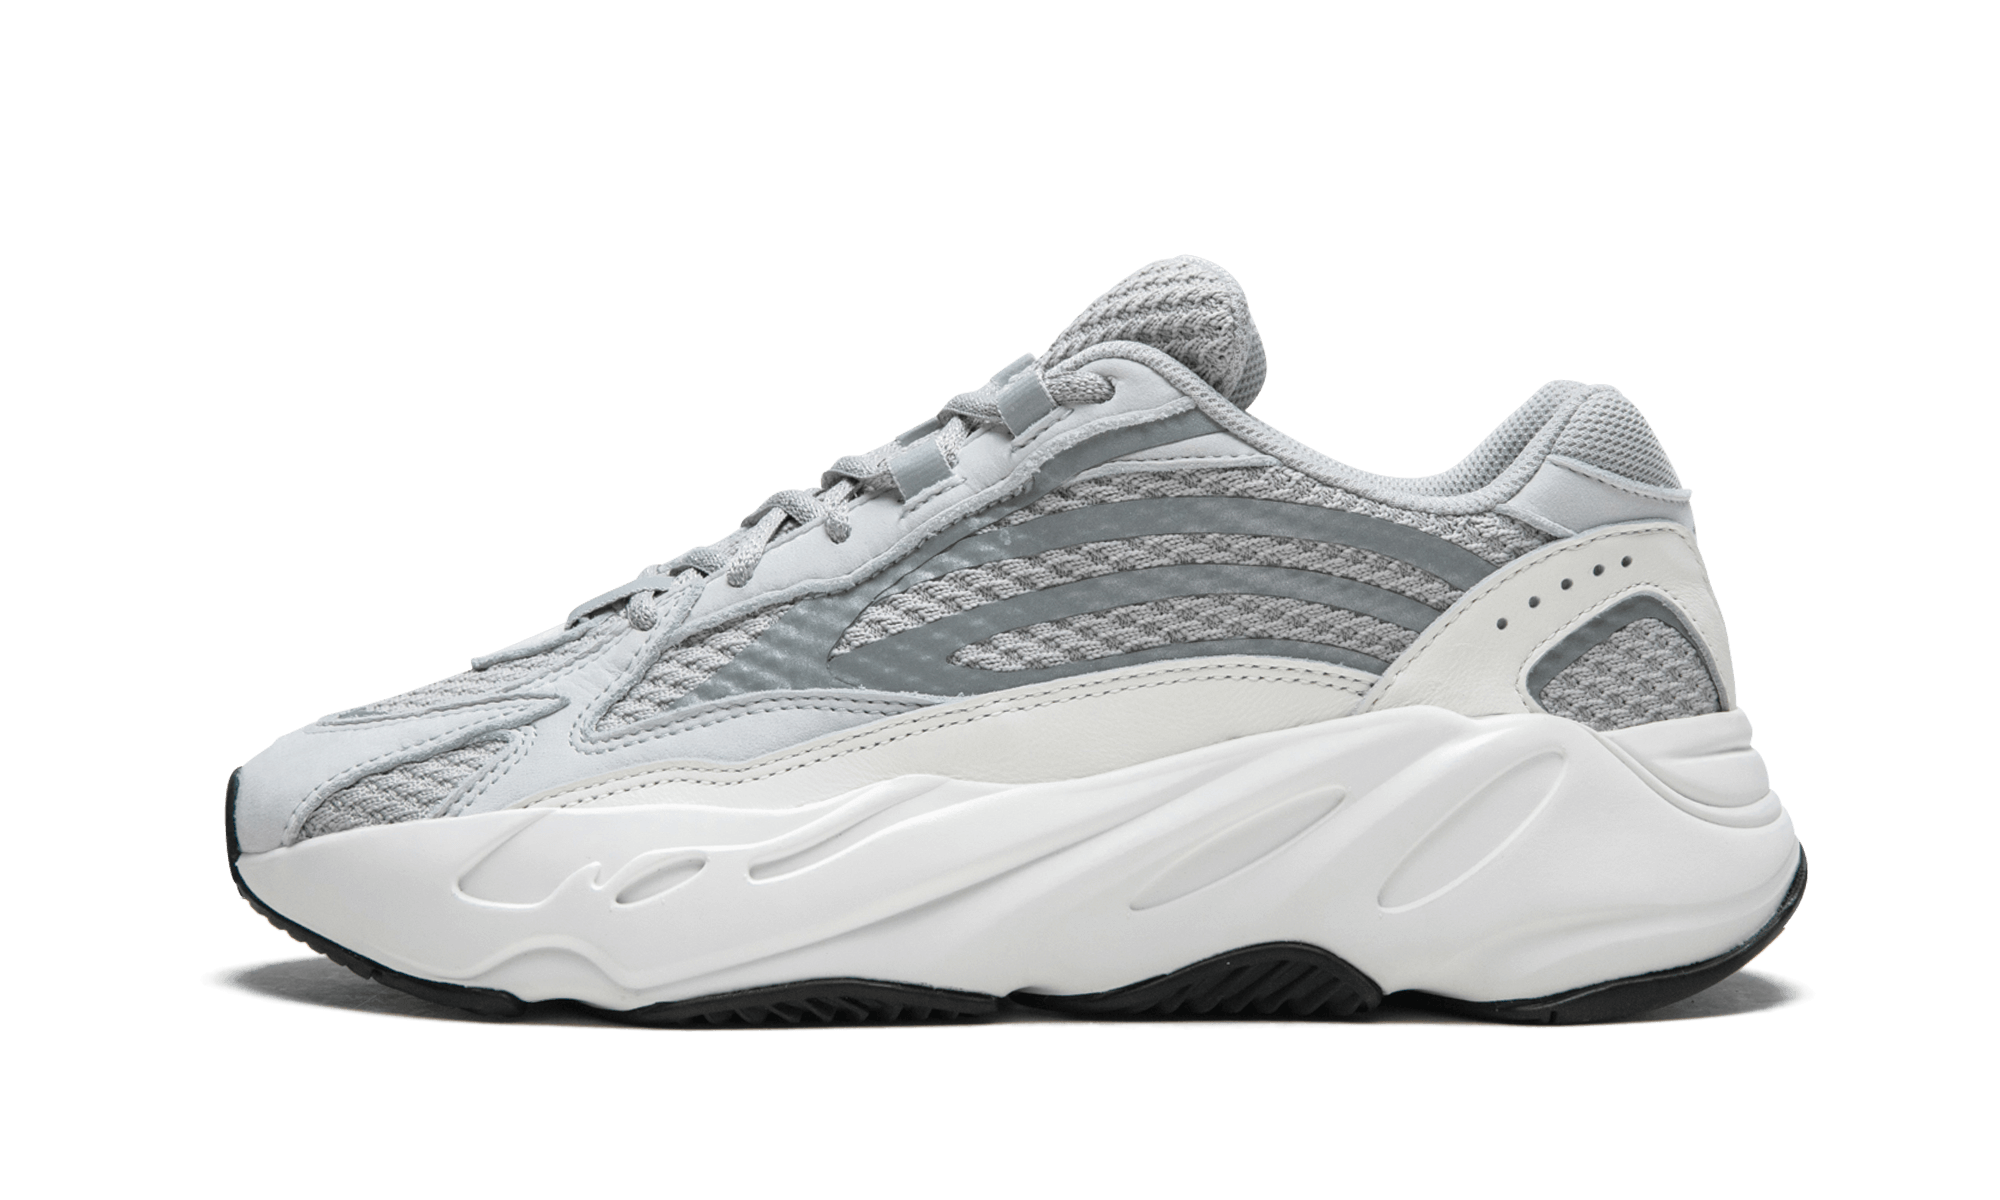 "bb3bbfdb13b The adidas Yeezy Boost 700 V2 ""Static"" is the first colorway of Kanye  West s remodeled chunky running silhouette. The Yeezy Boost 700 V2 features  the same ..."